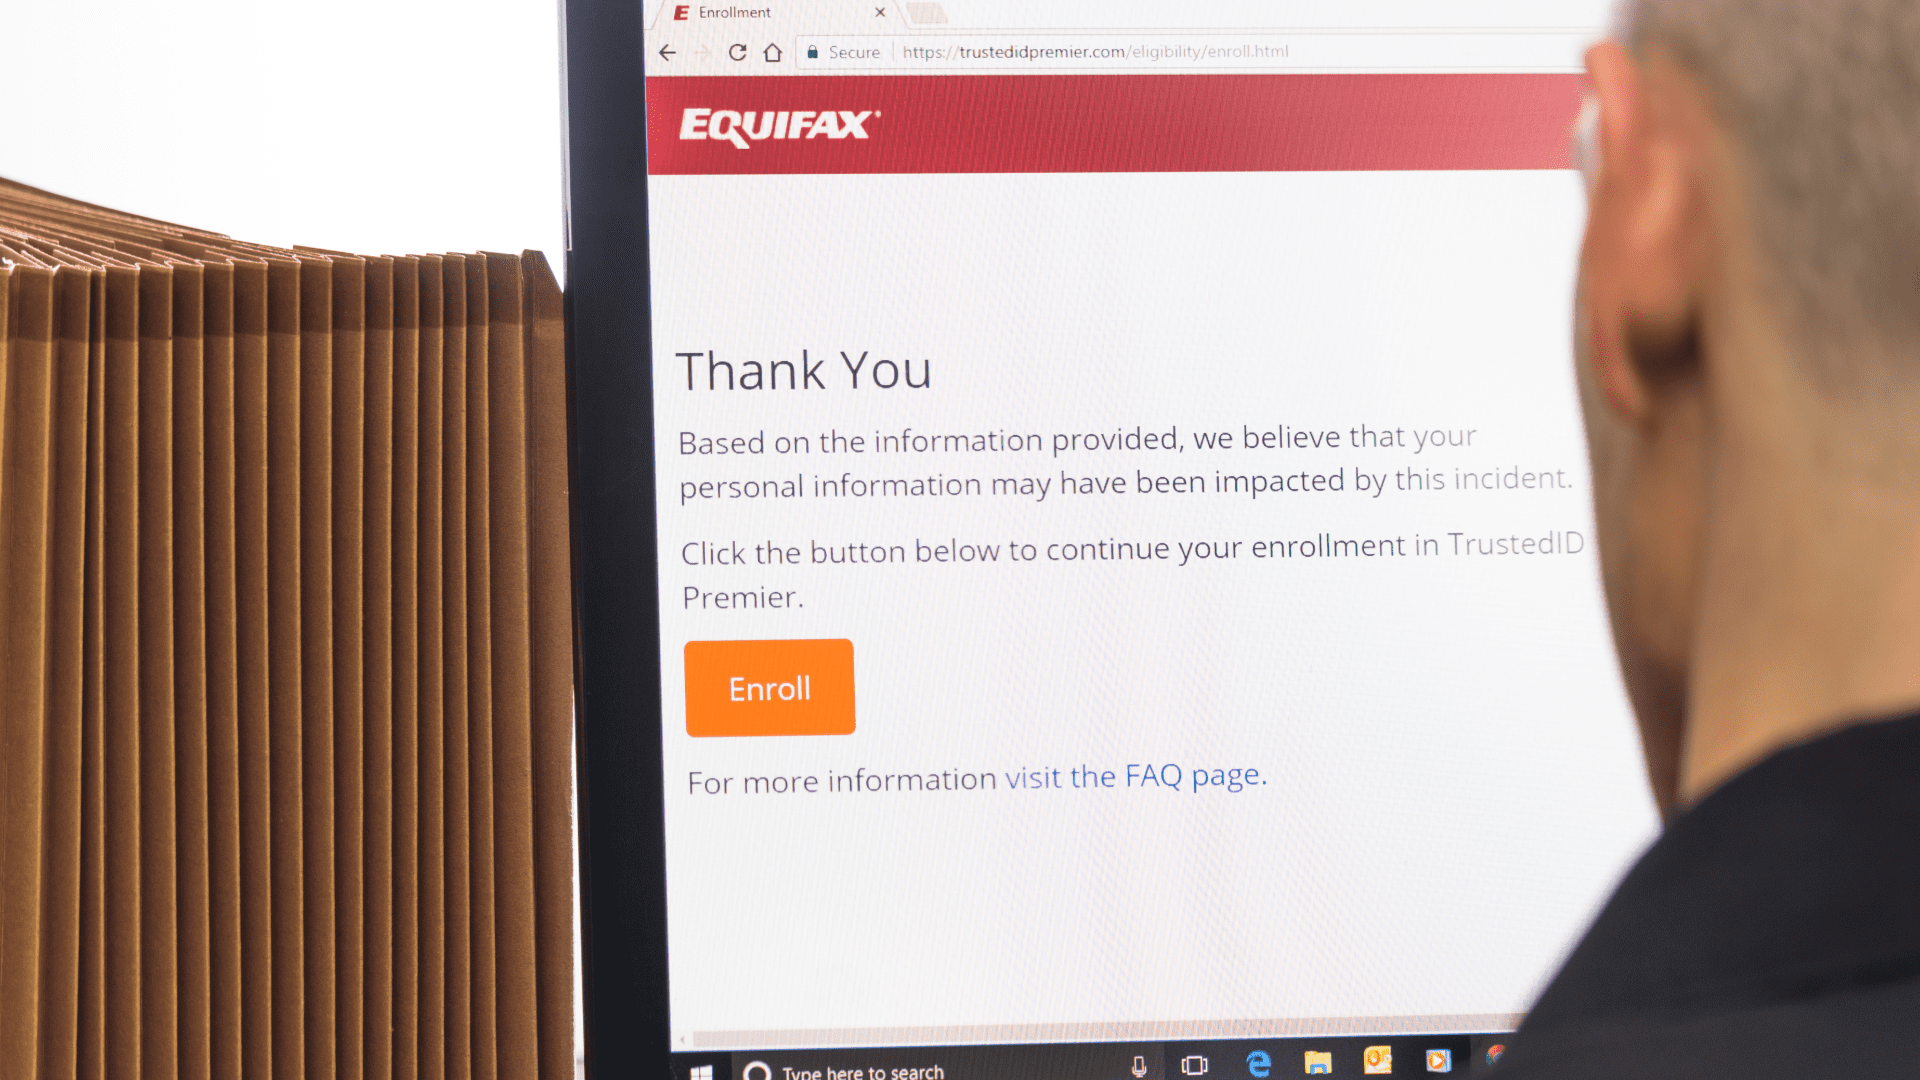 equifax personal information impact check